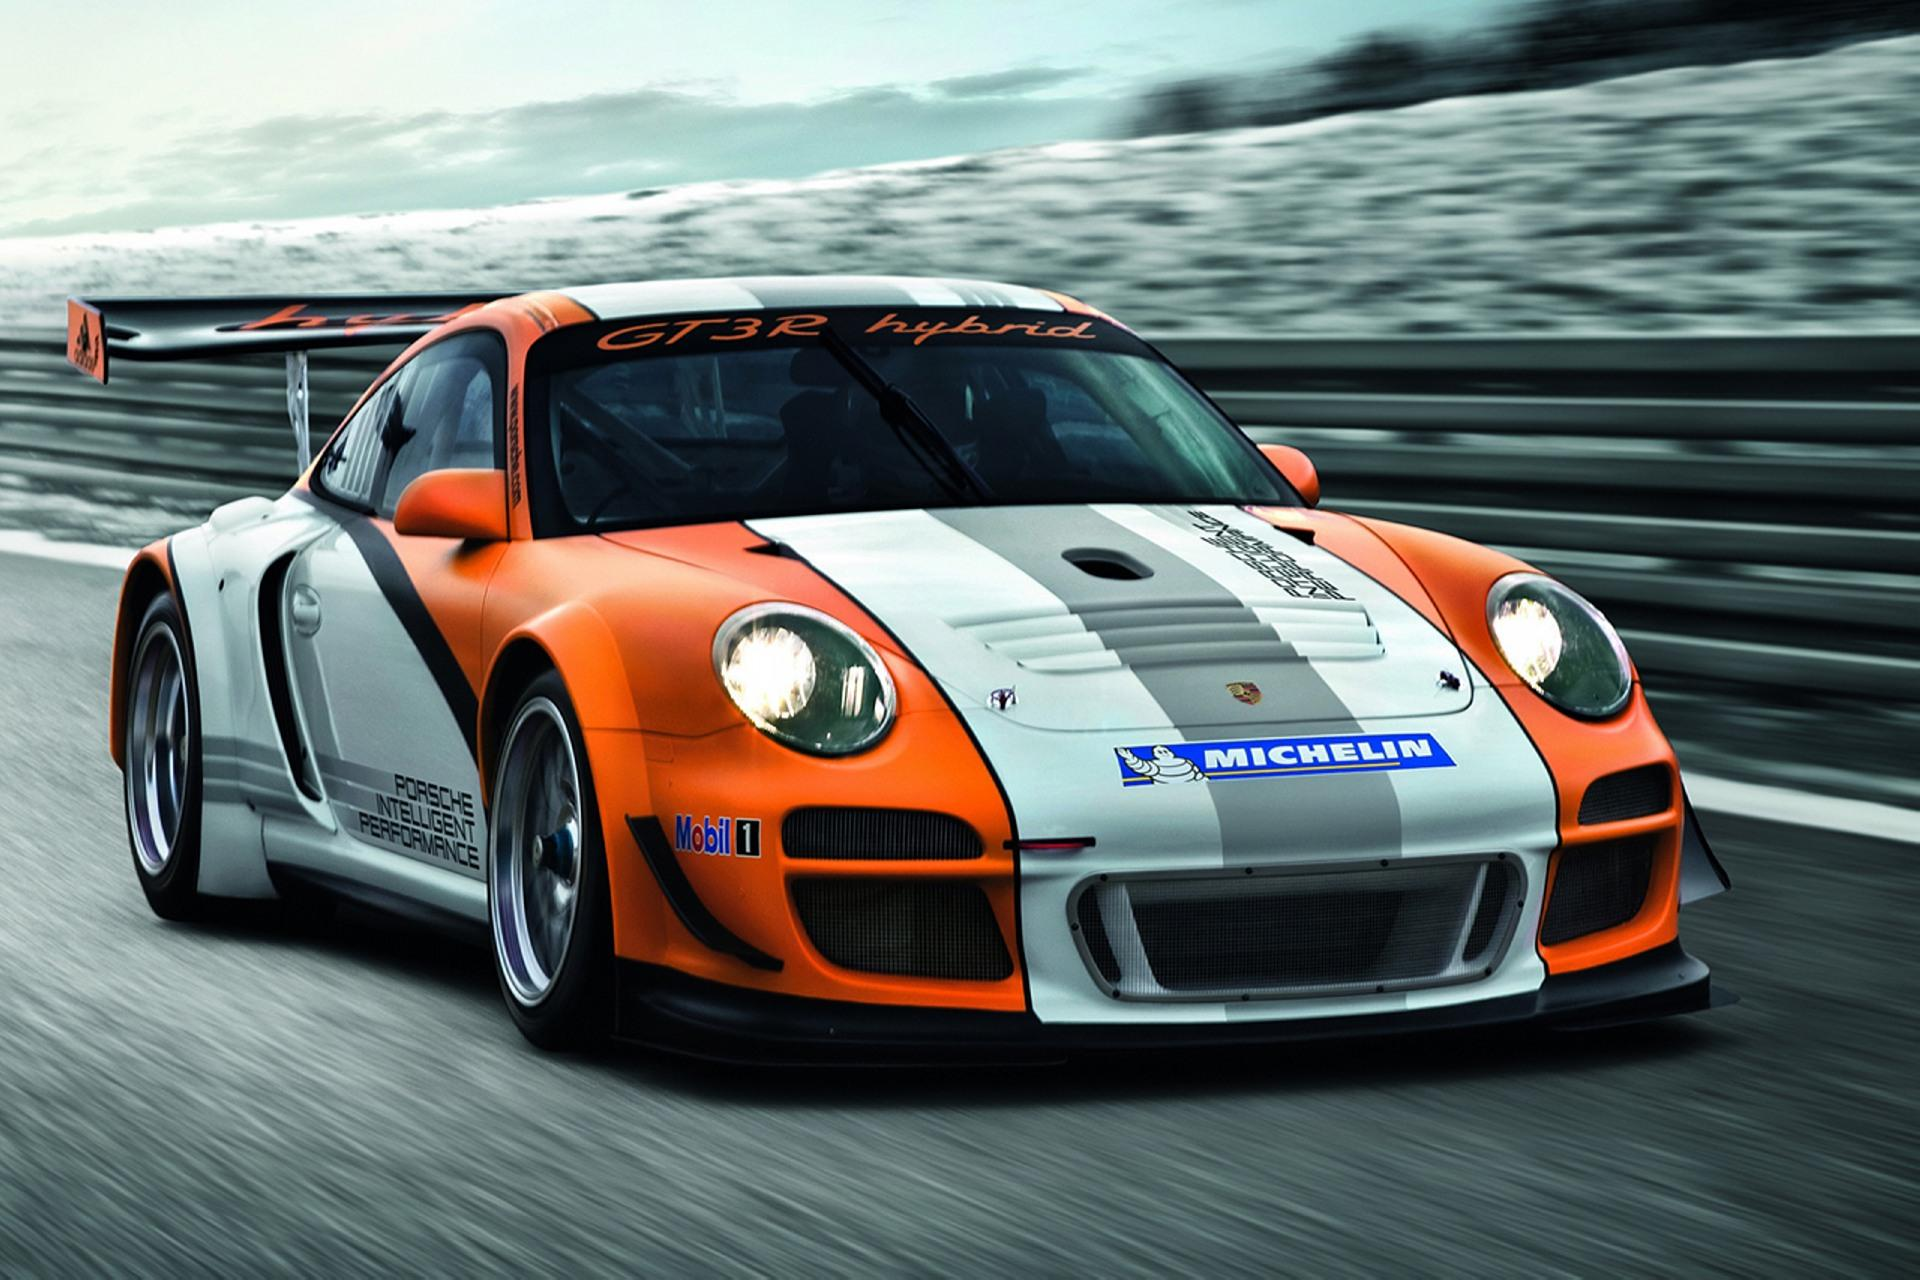 2010 Porsche 911 GT3 R Hybrid News and Information